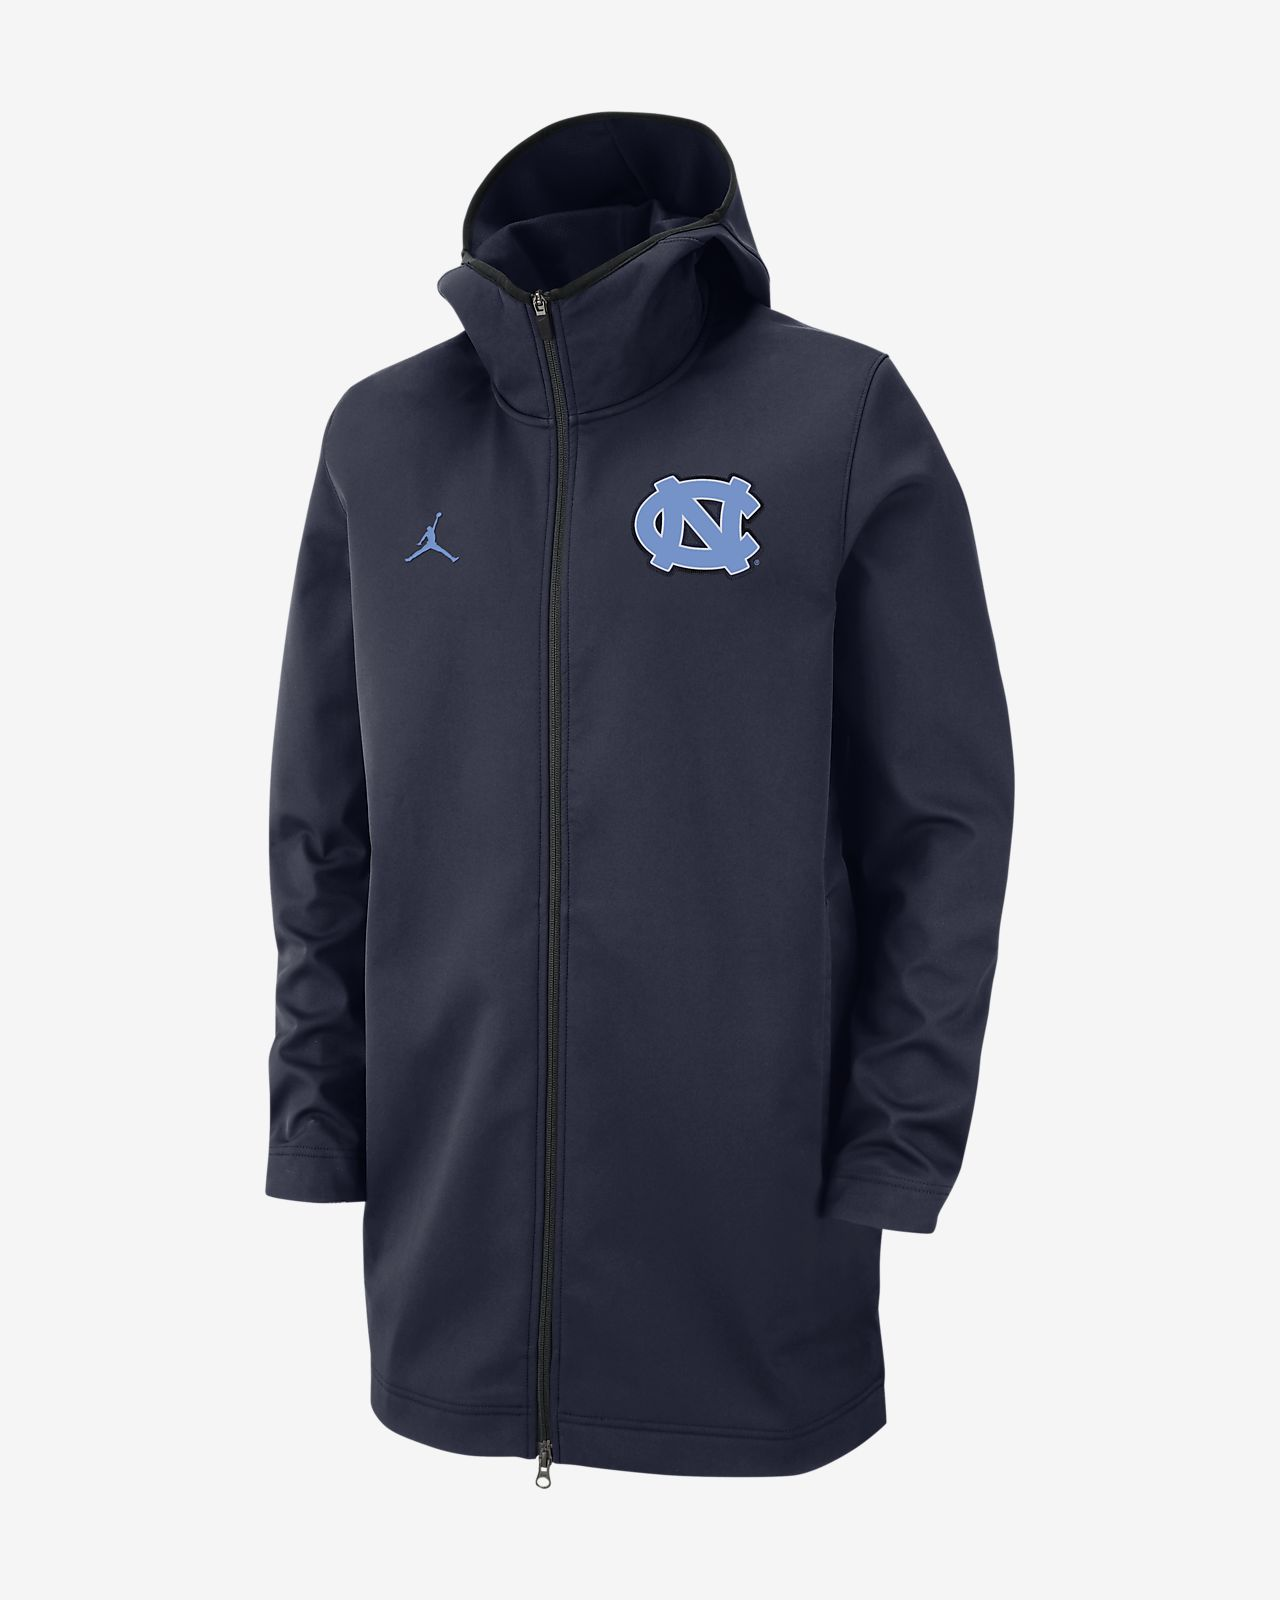 Jordan College (North Carolina) Men's Jacket